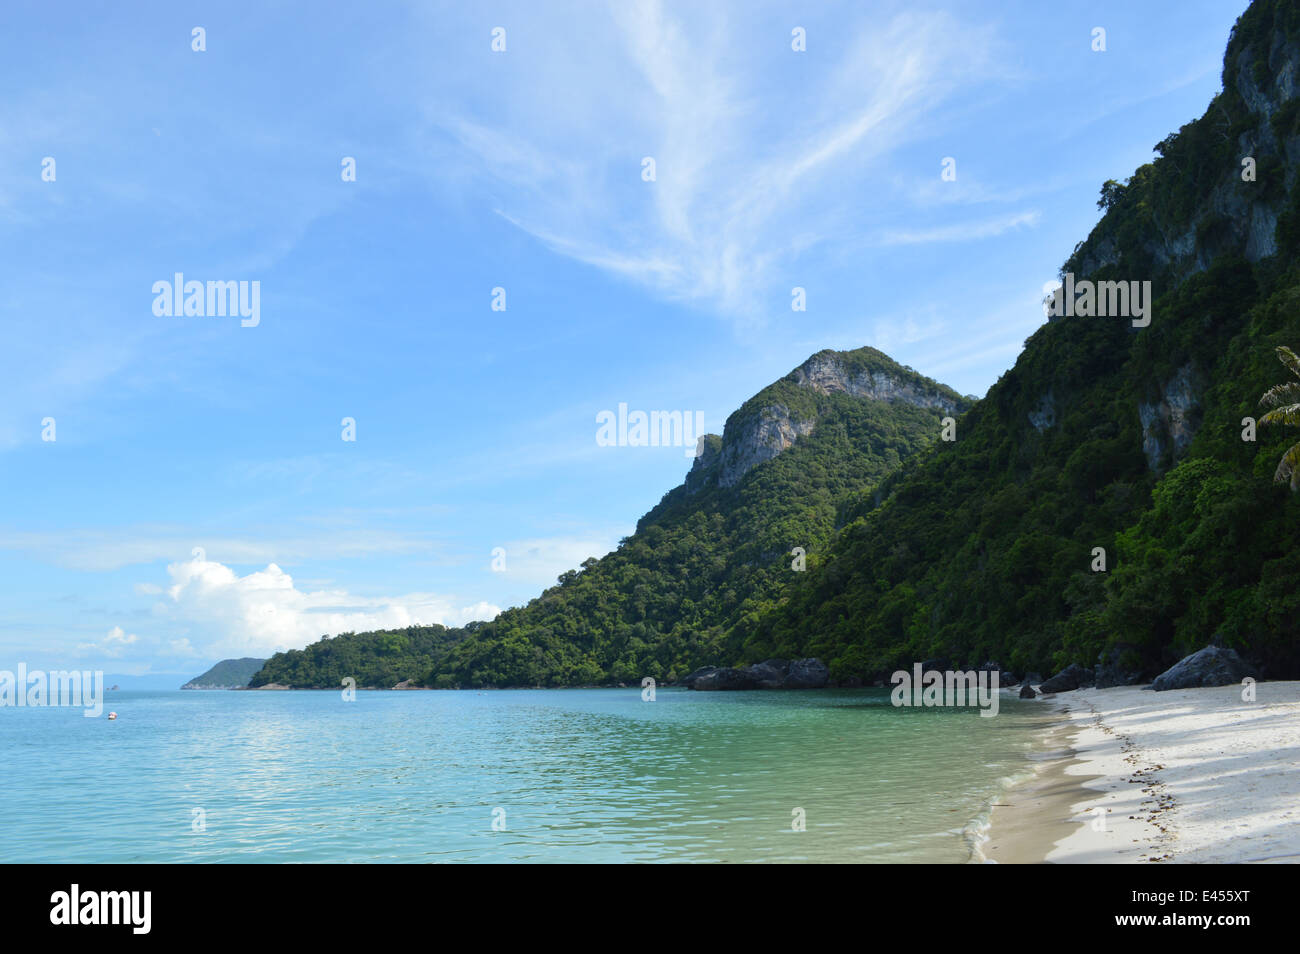 Deserted beach in Ang Thong National Park, Thailand - Stock Image